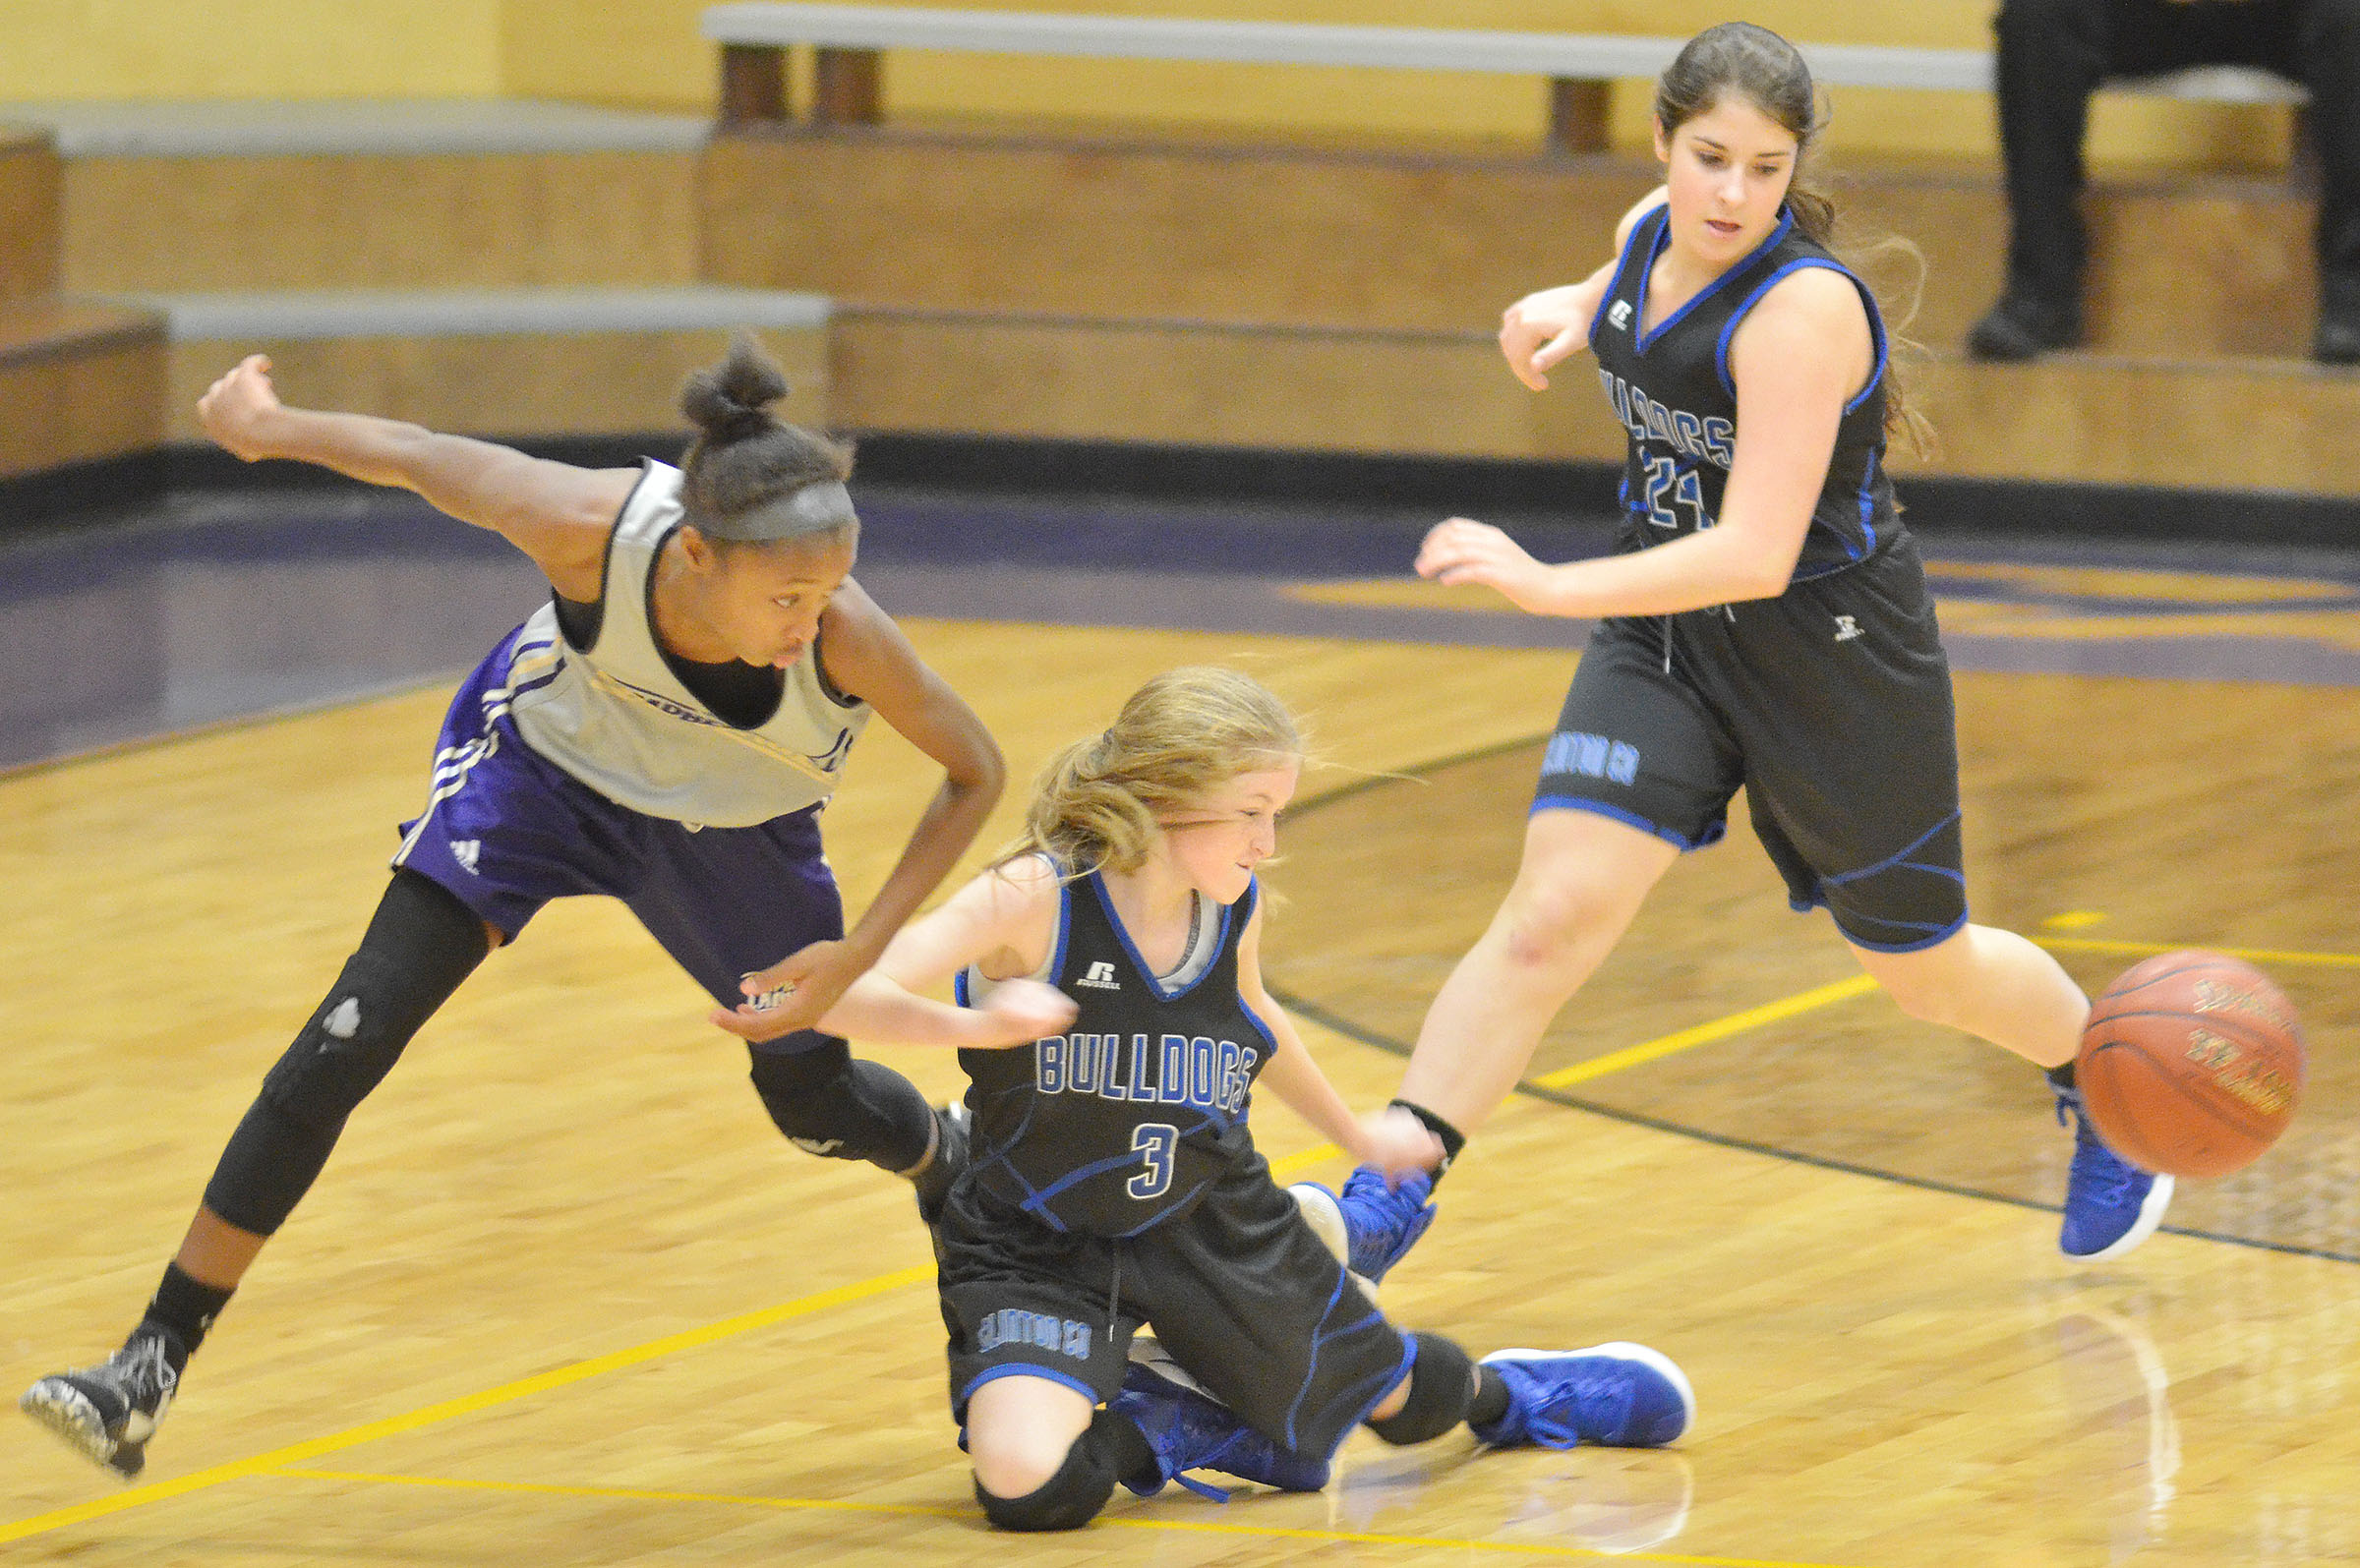 Campbellsville Middle School seventh-grader Bri Gowdy fights for the ball.